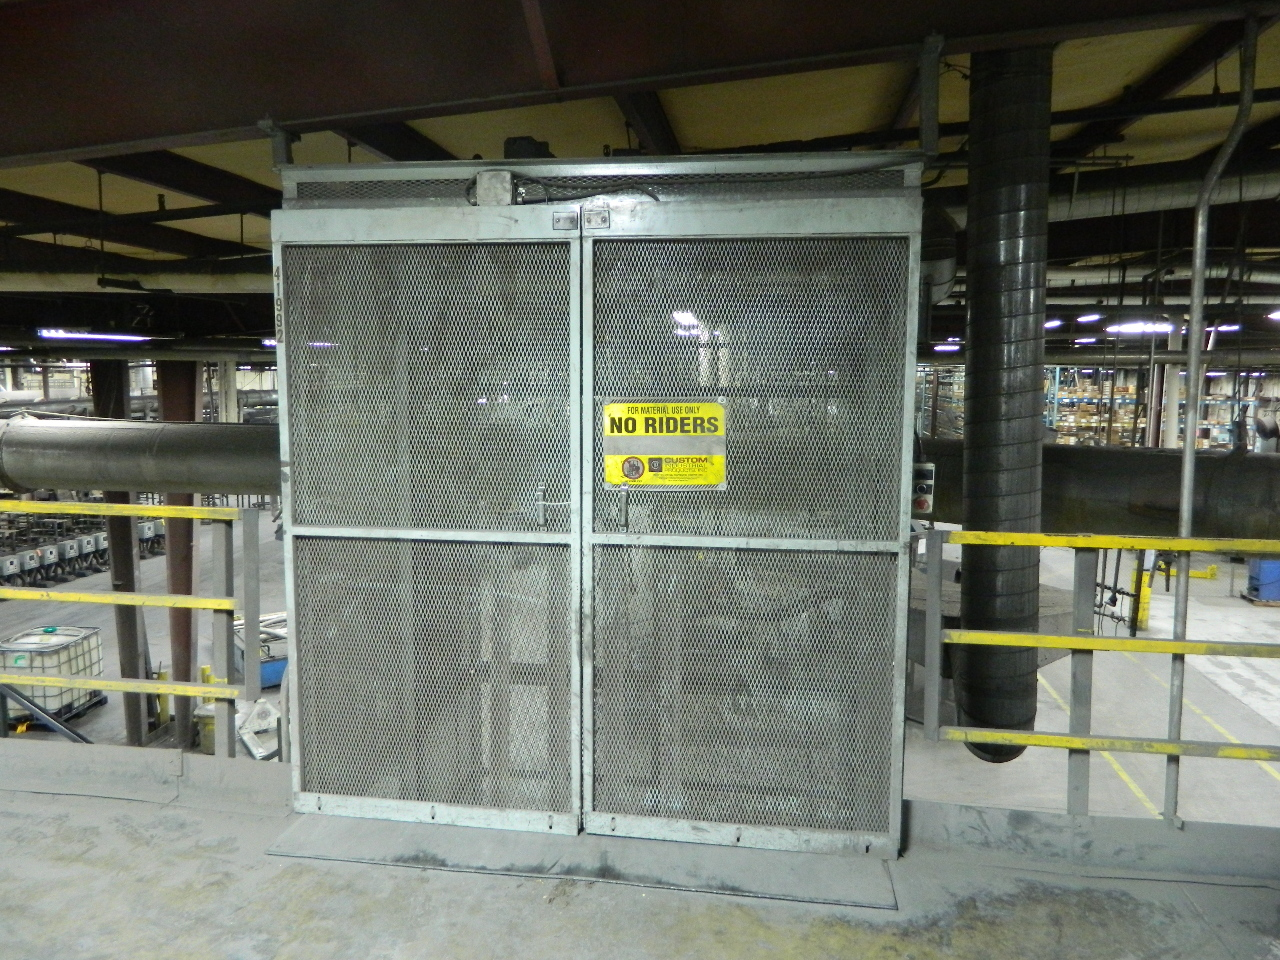 Cip vertical material lift mezzanine elevator 2 story 4 for 2 story elevator